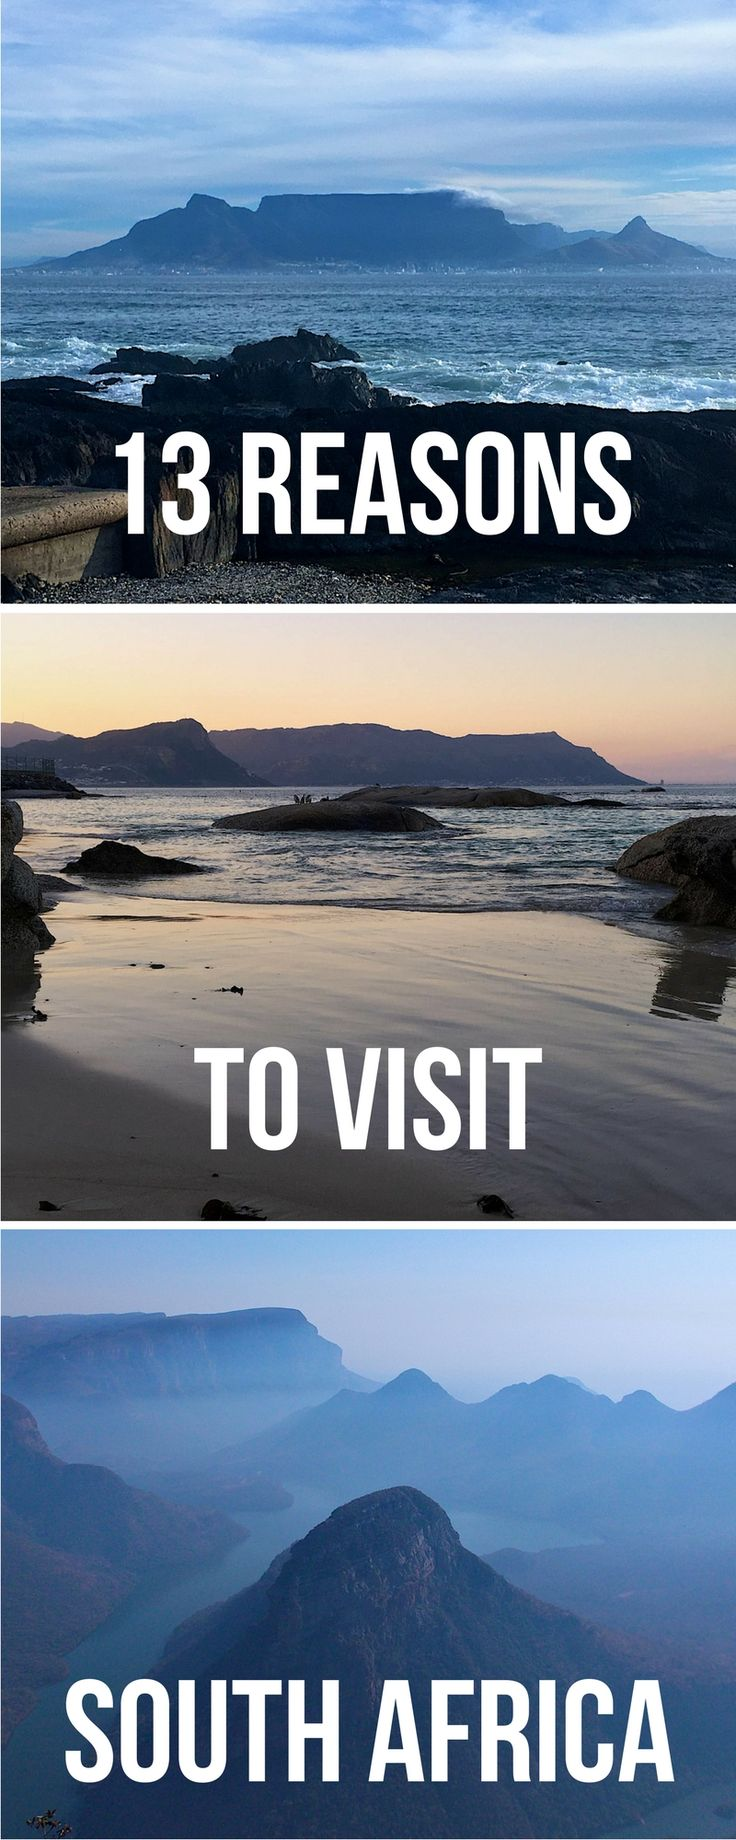 13 Great reasons to visit South Africa | Reasons why you should visit South Africa | South Africa #southafrica #traveltips